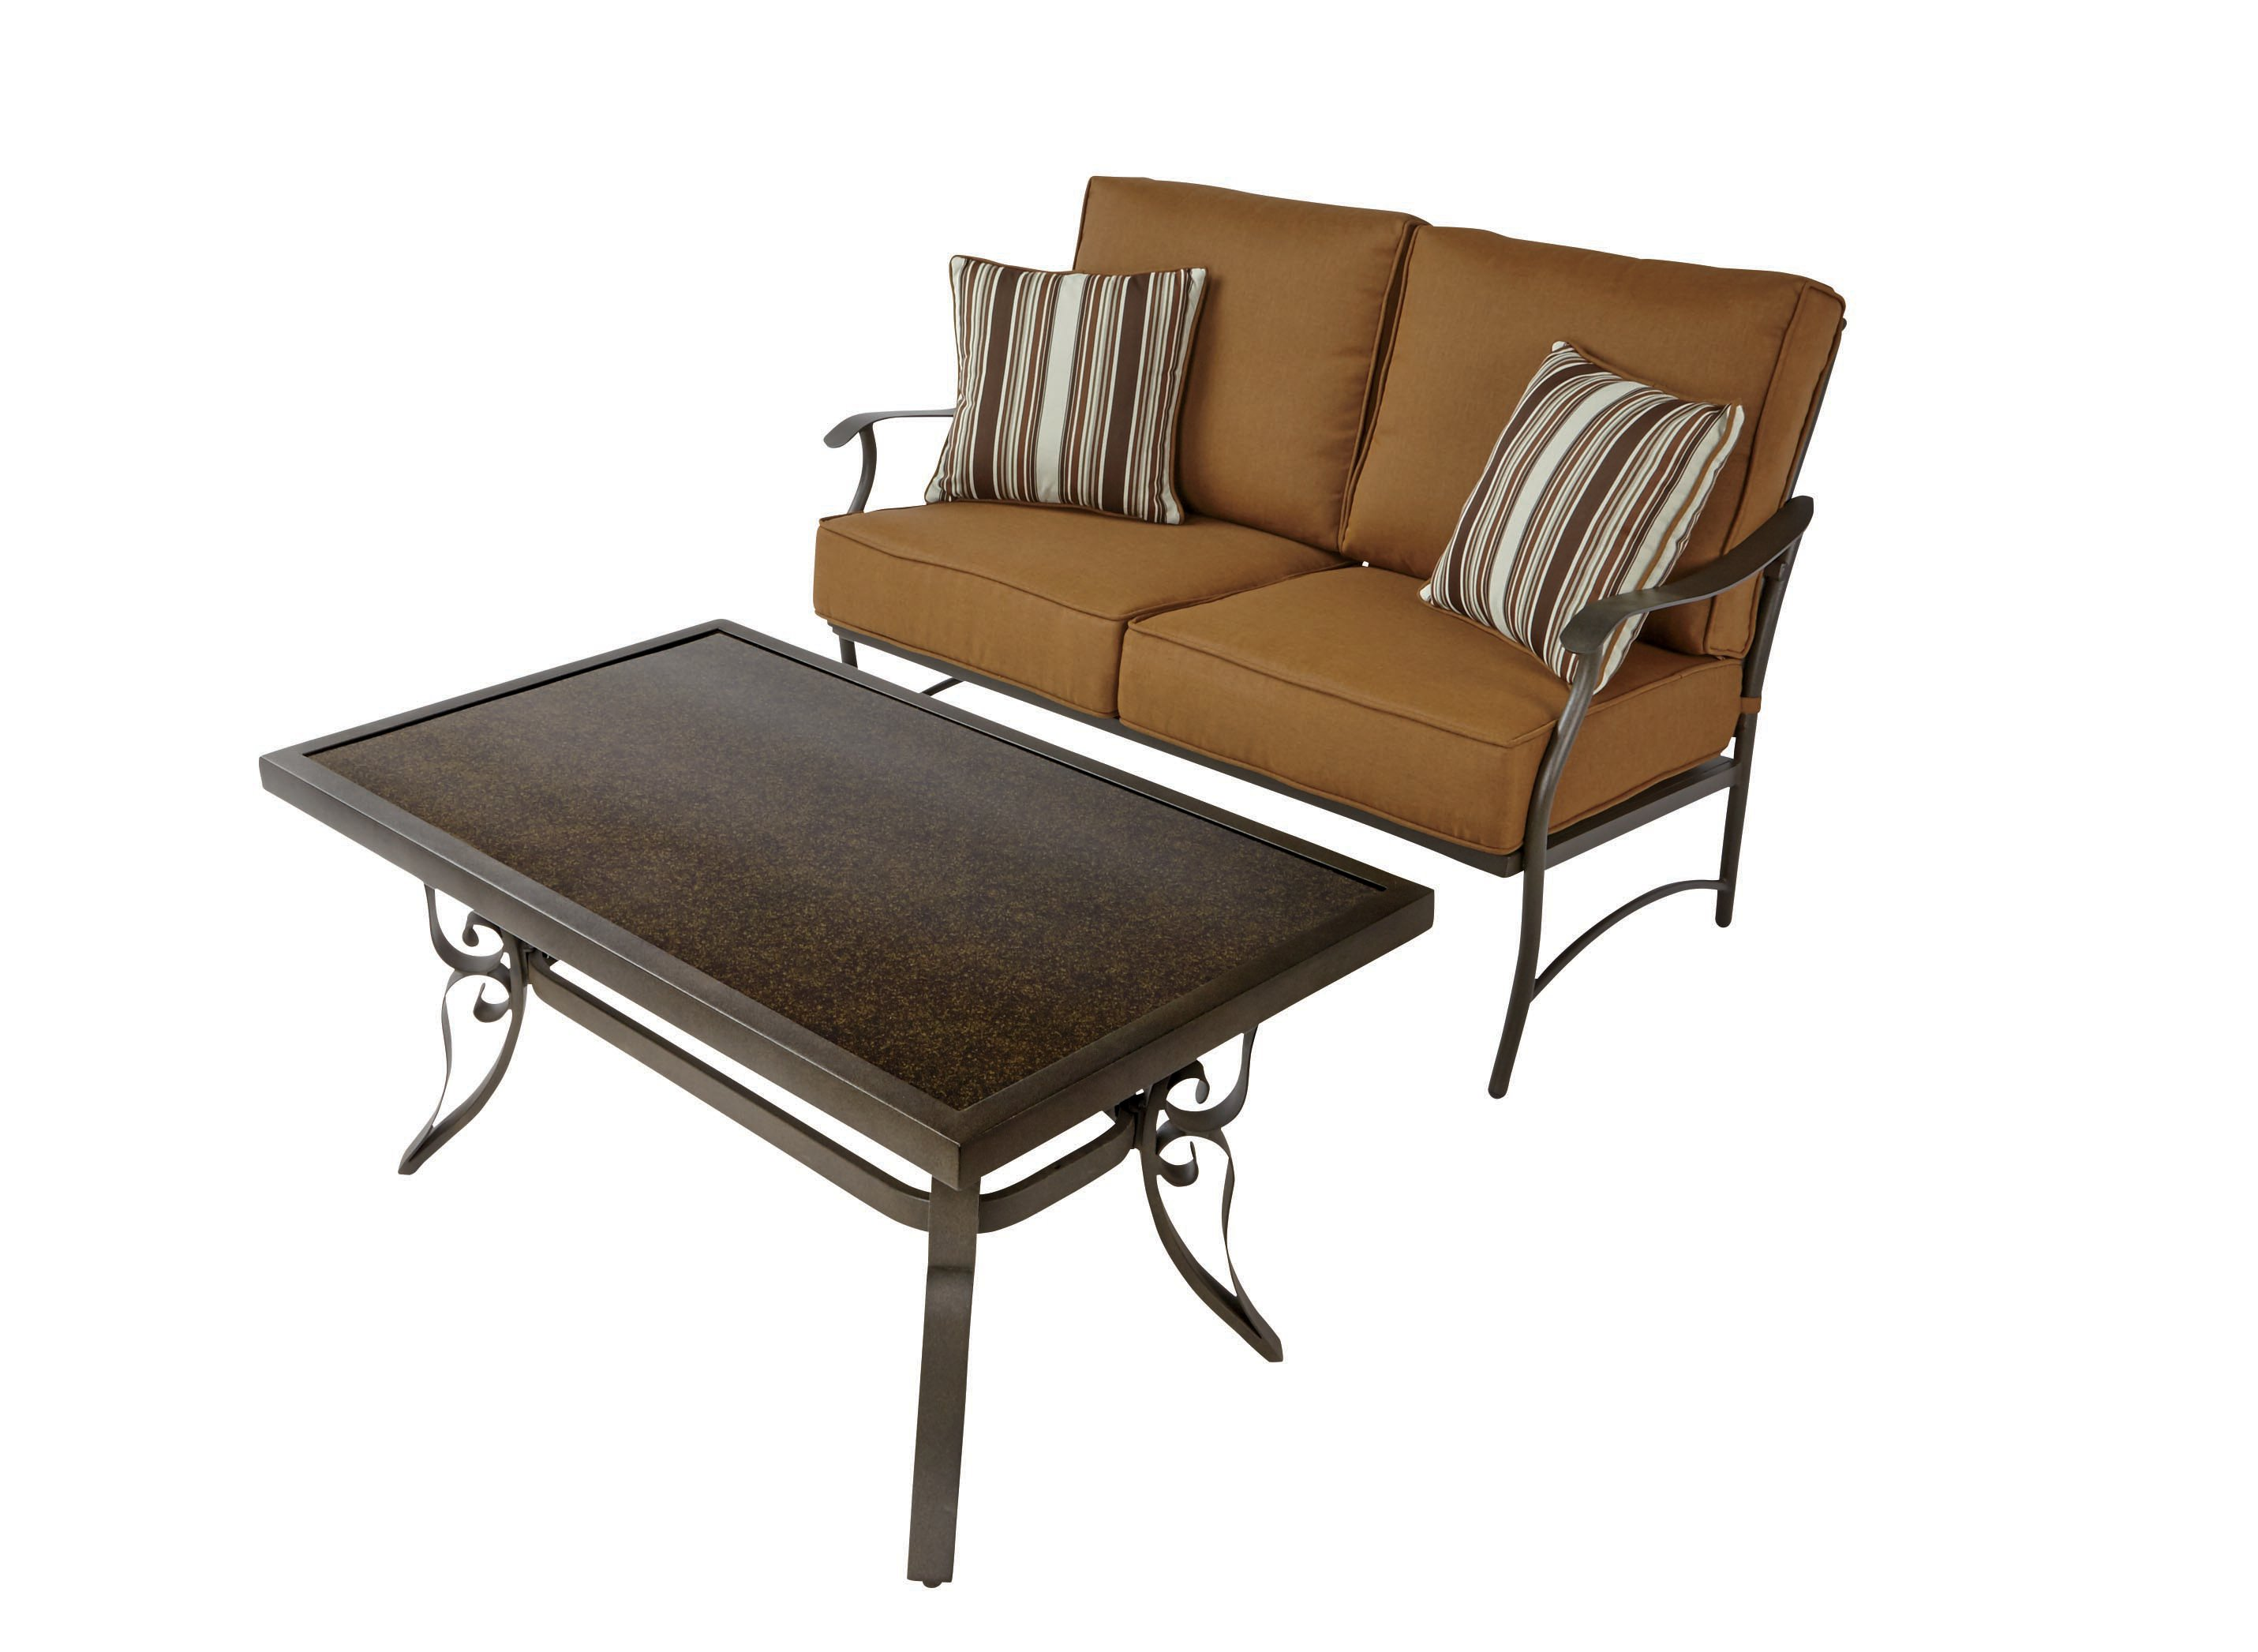 Pacific Casual Copper Canyon Chat Set Shop Furniture at HEB